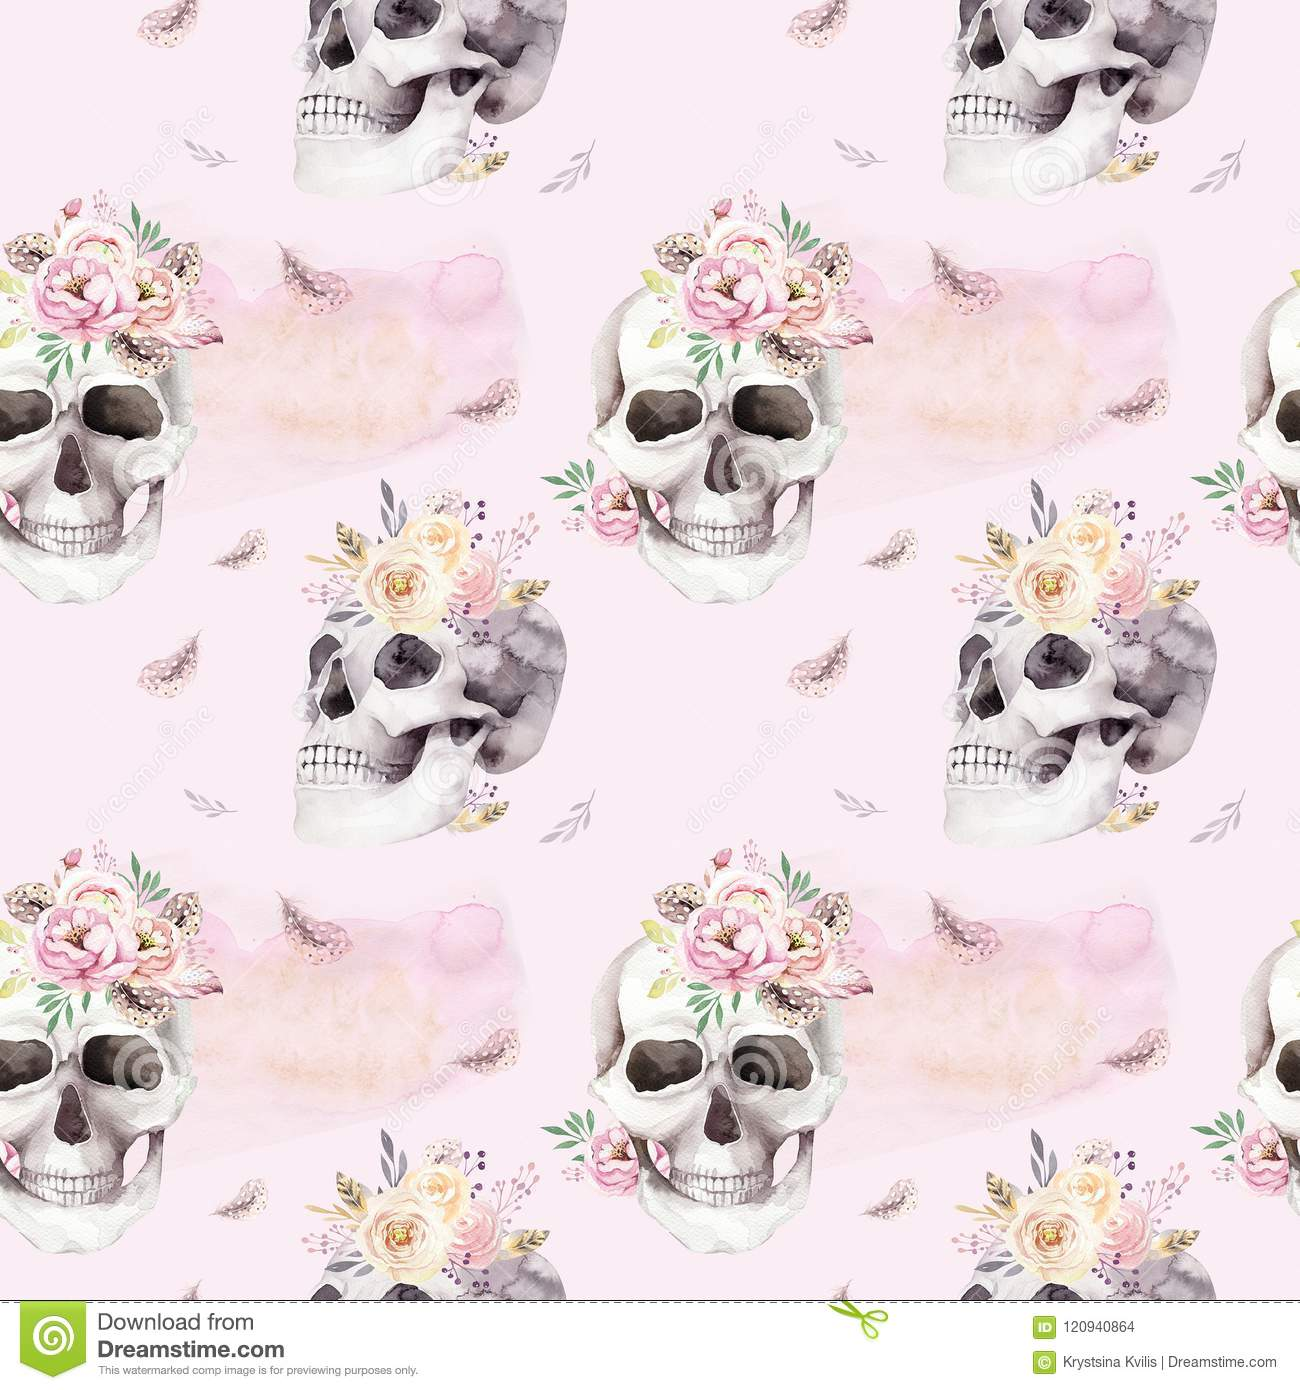 Vintage Watercolor Patterns With Skull And Roses Wildflowers